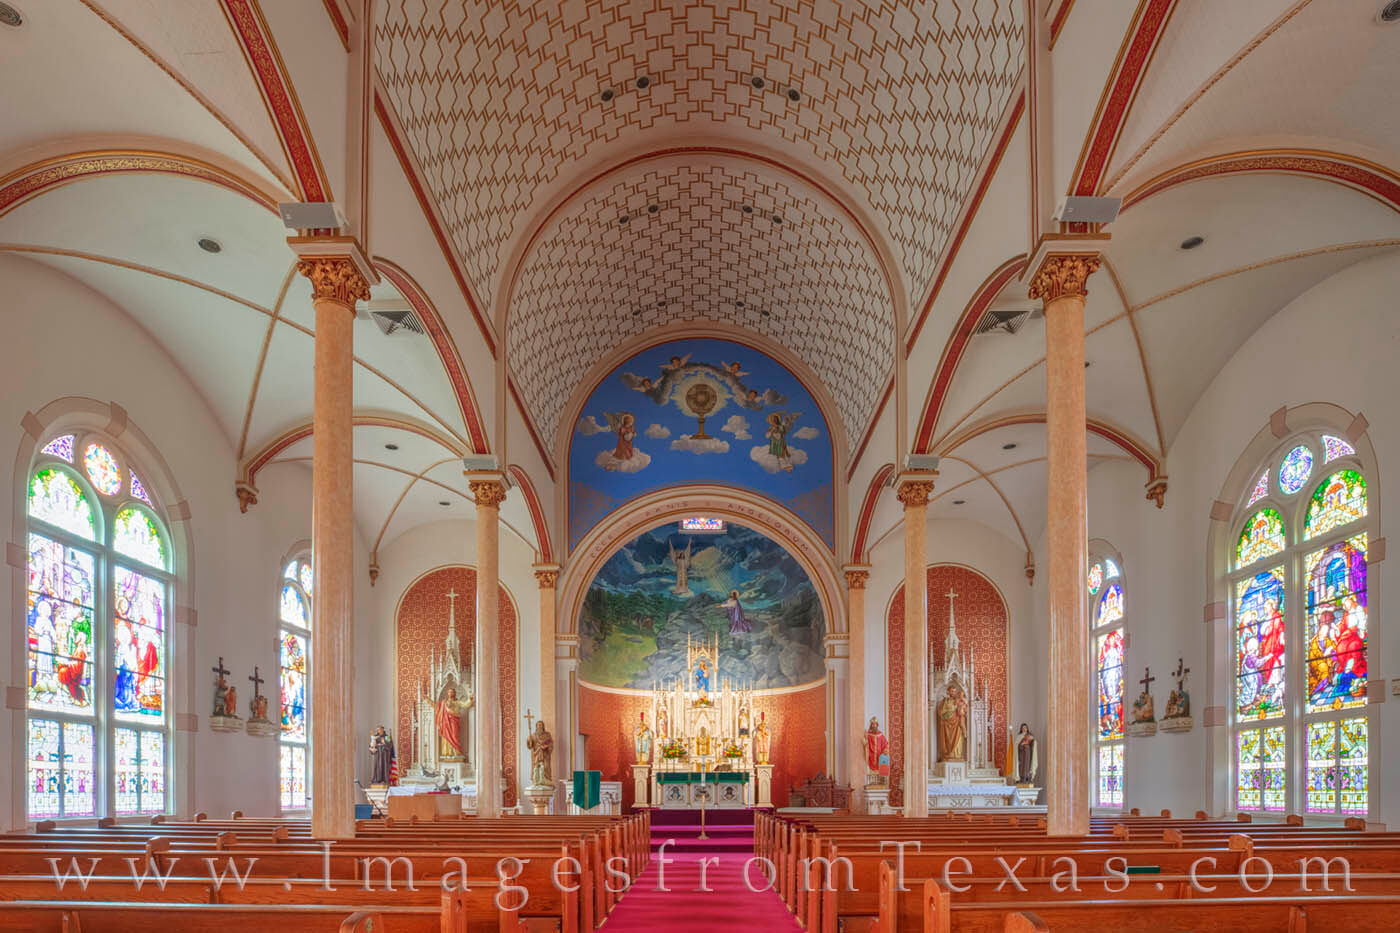 painted church, shiner, gothic, saint cyril, methodius, catholic church, texas history, czech, german, stained glass, frescoes